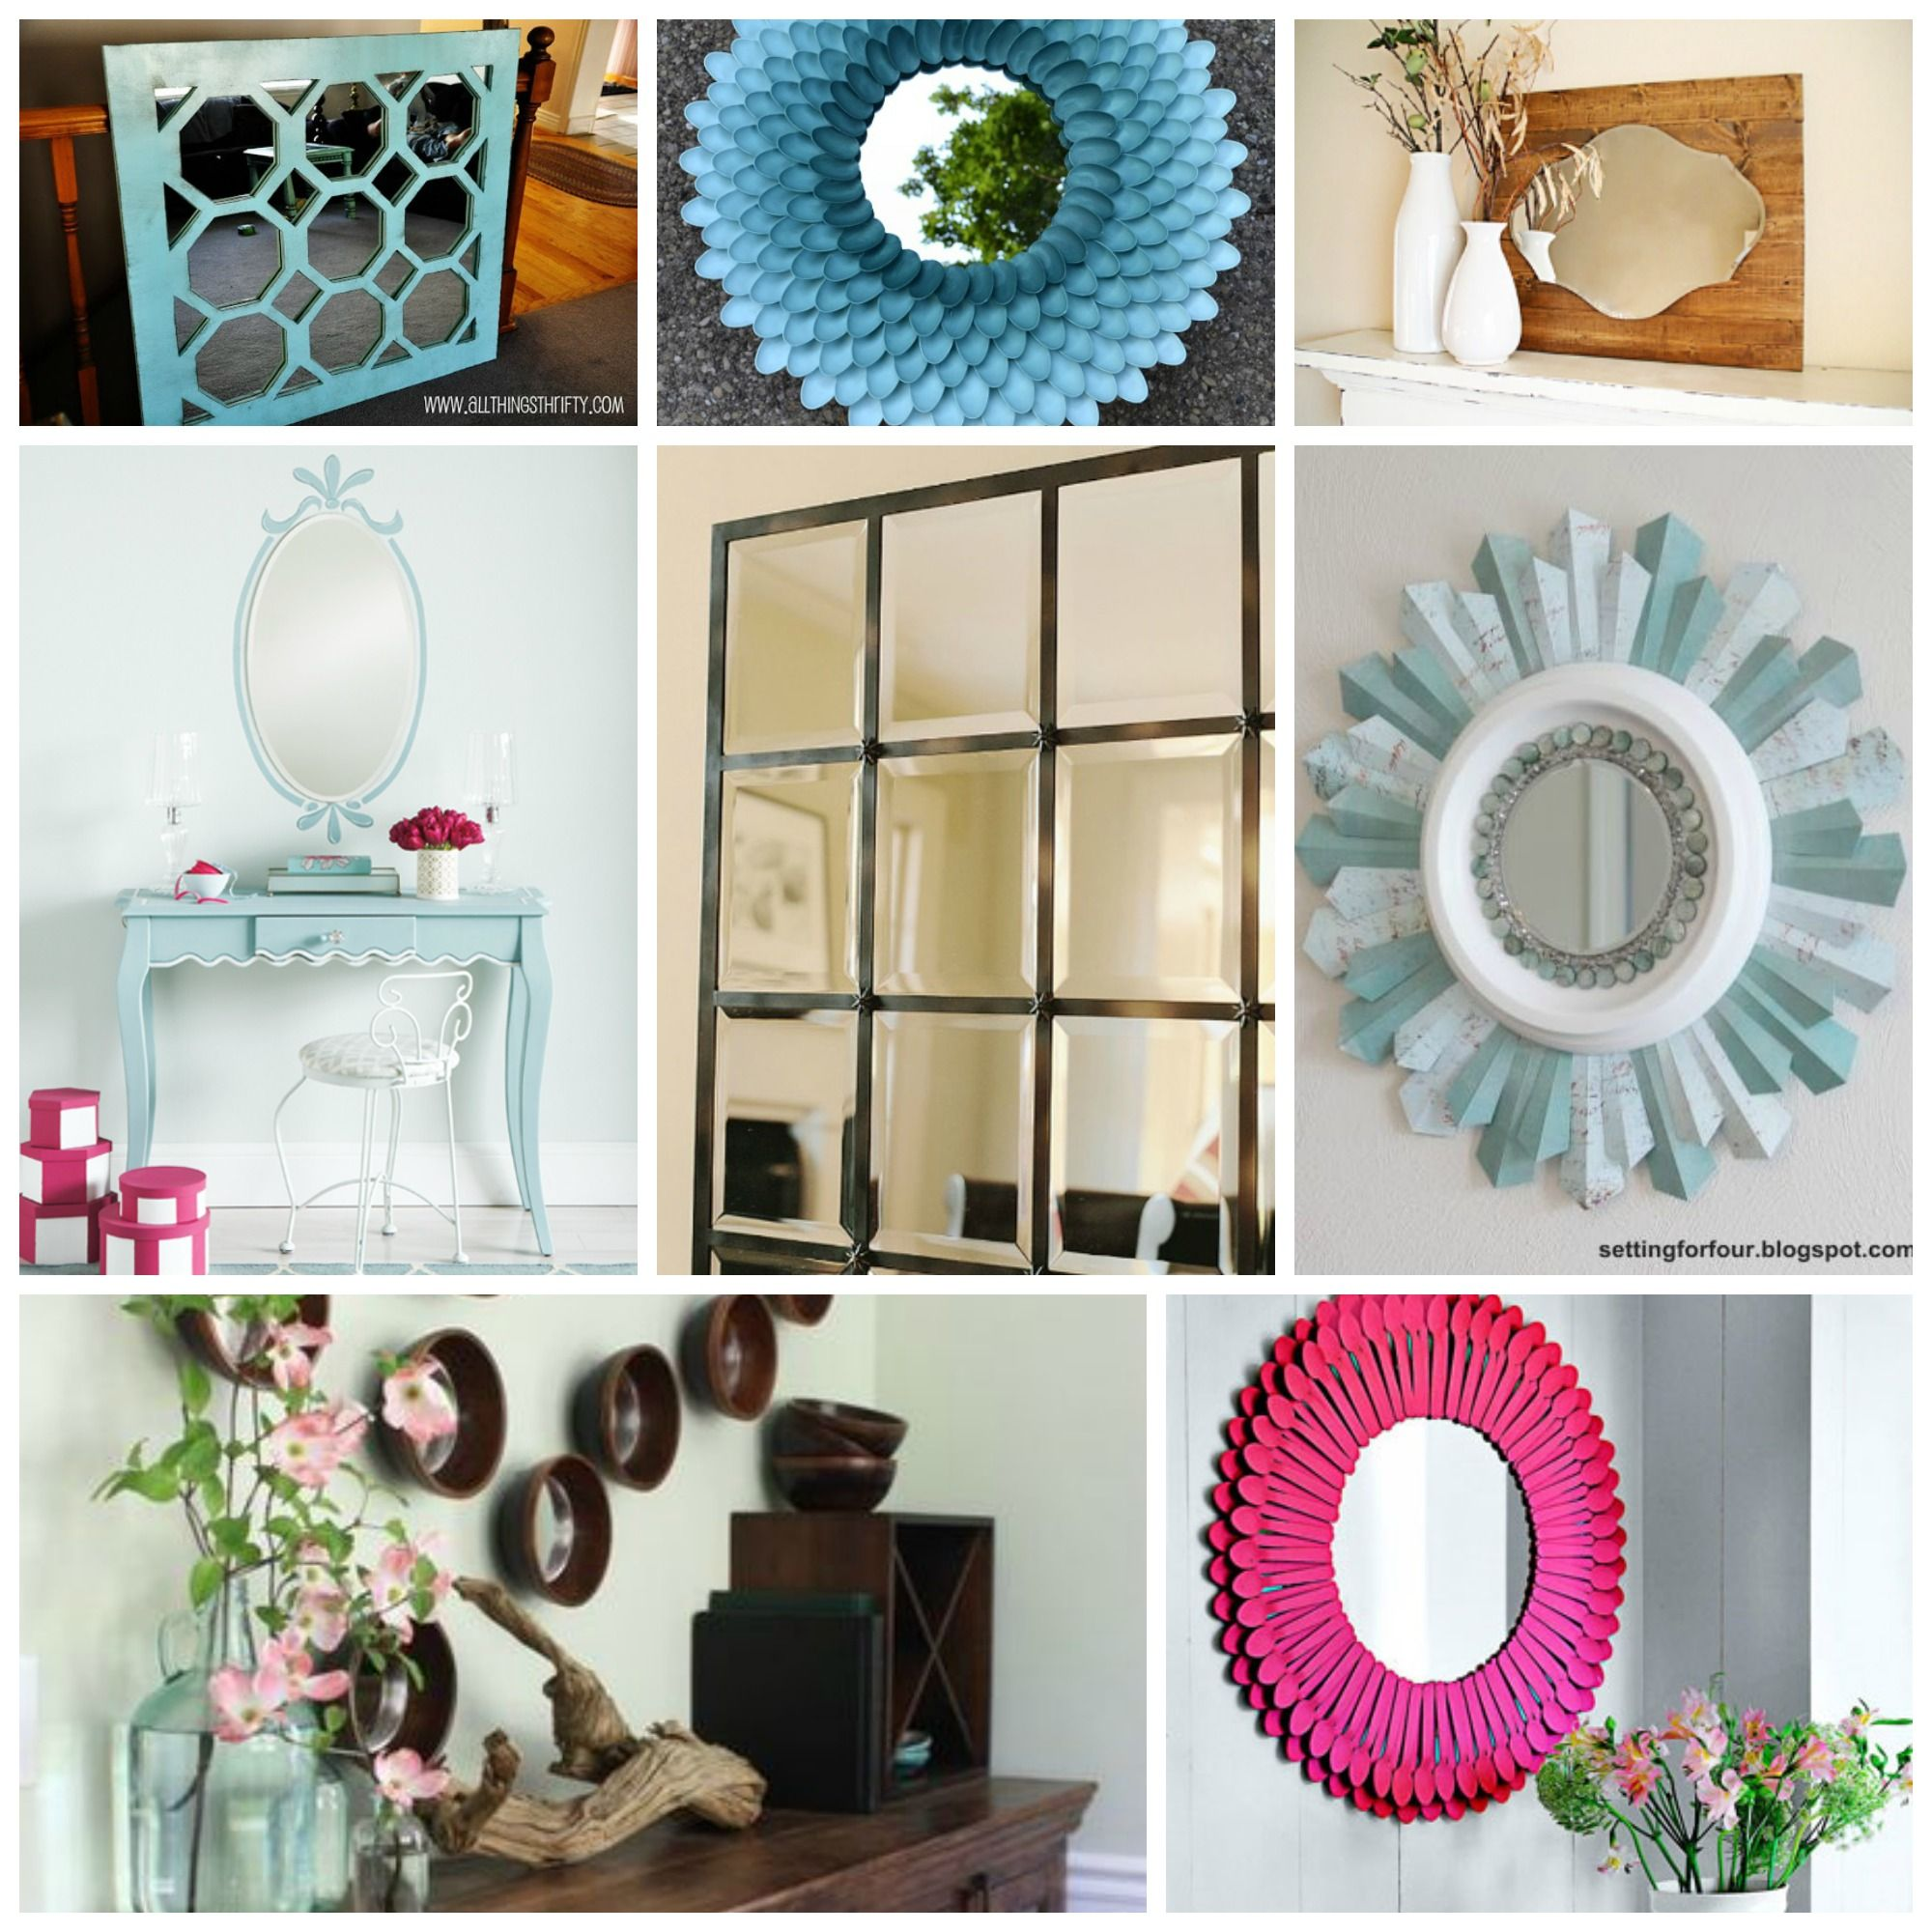 DIY Mirrors Round Up Crafty Tutorials and Upcycling